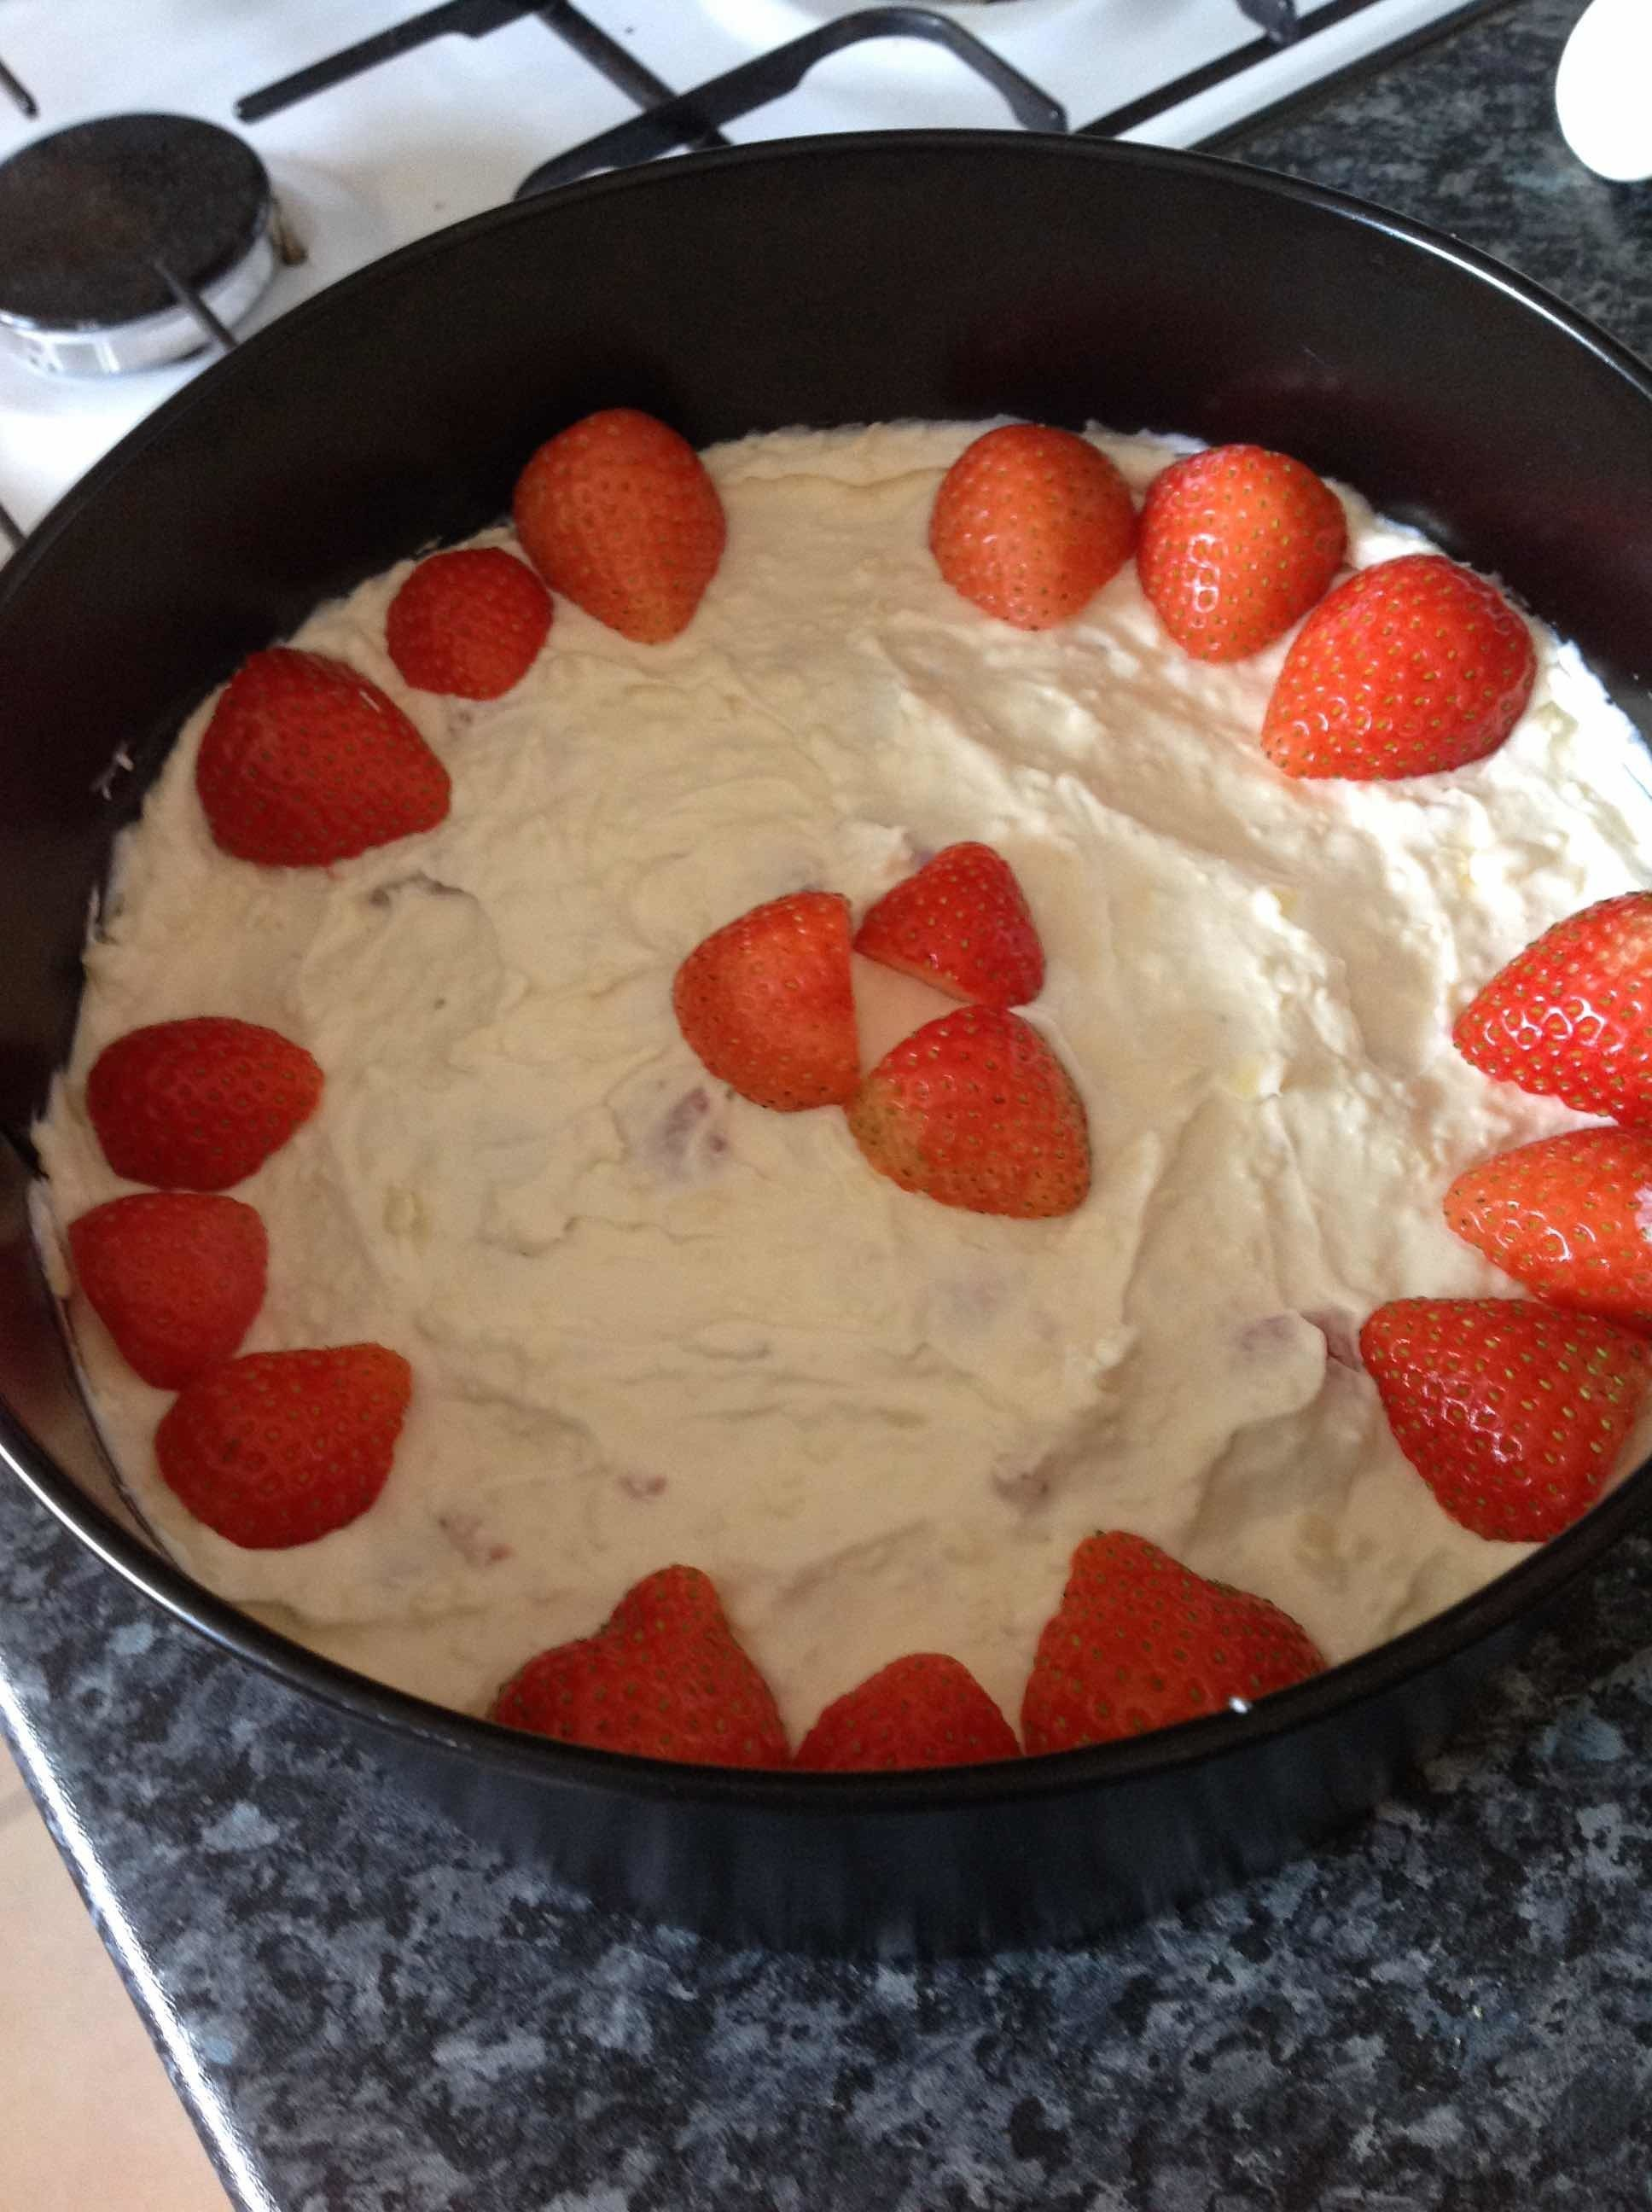 Easy No-bake White Chocolate and Strawberry Cheesecake